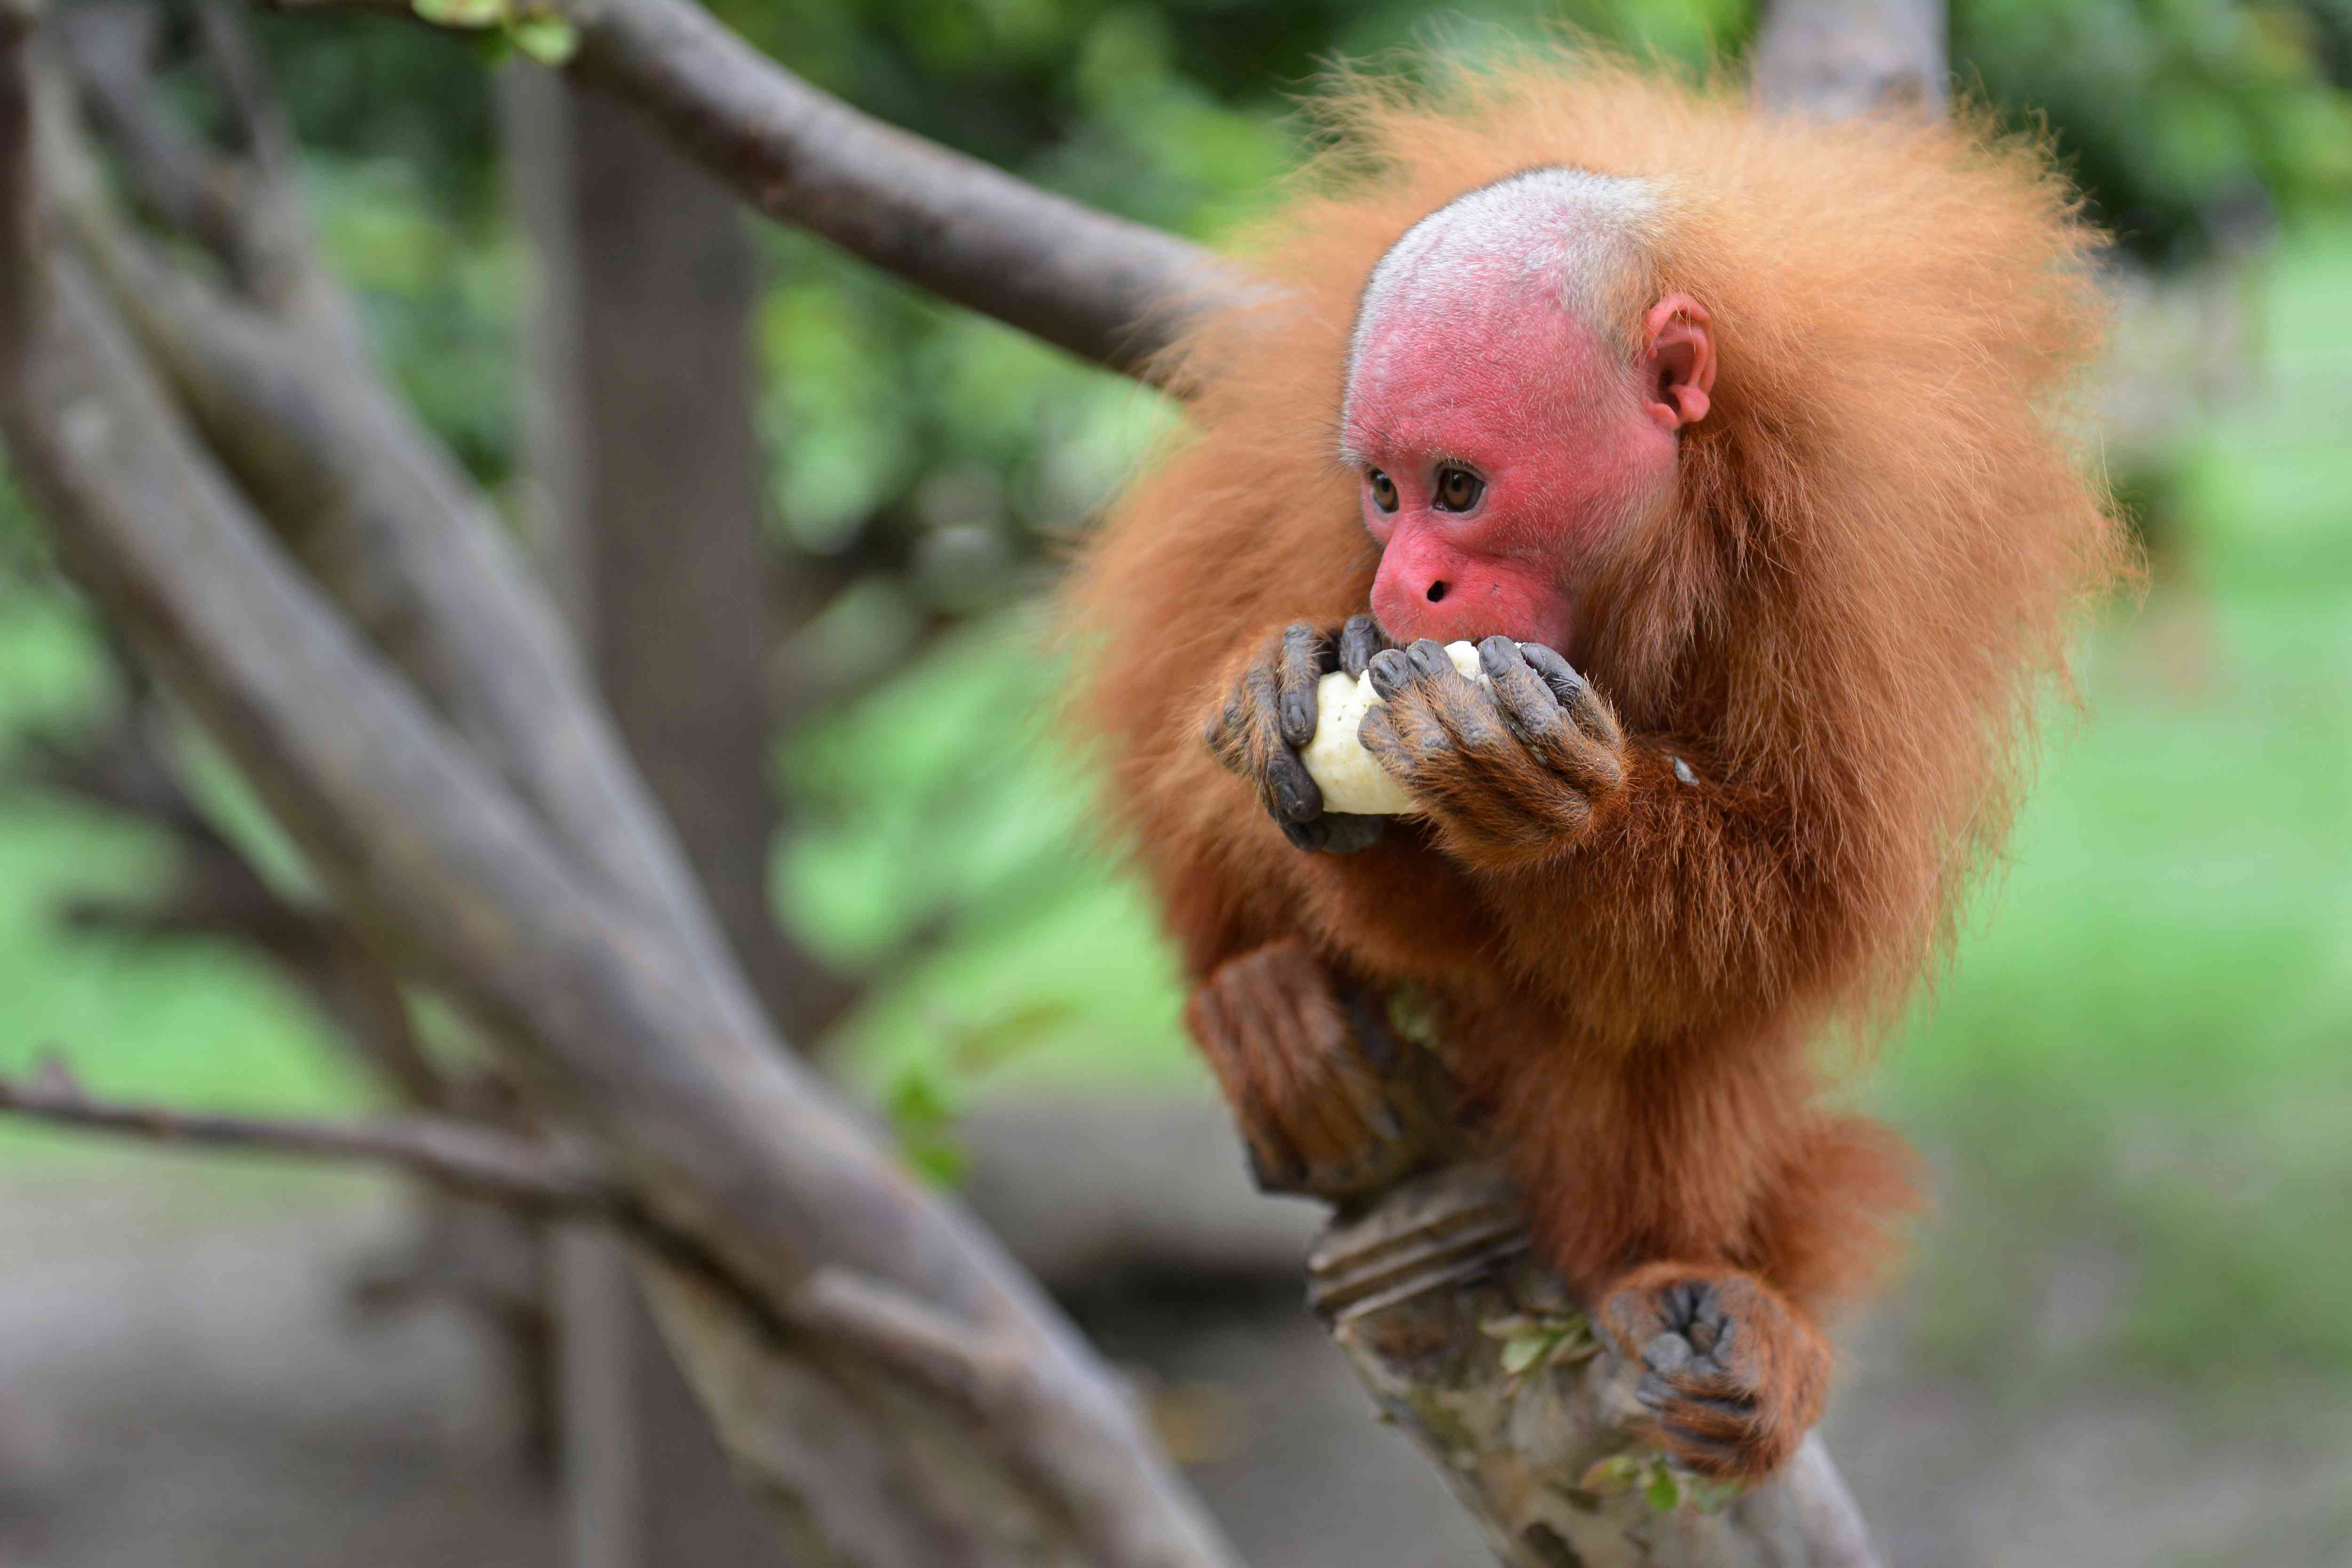 A bald uakari with a vibrant red face enjoys a meal.